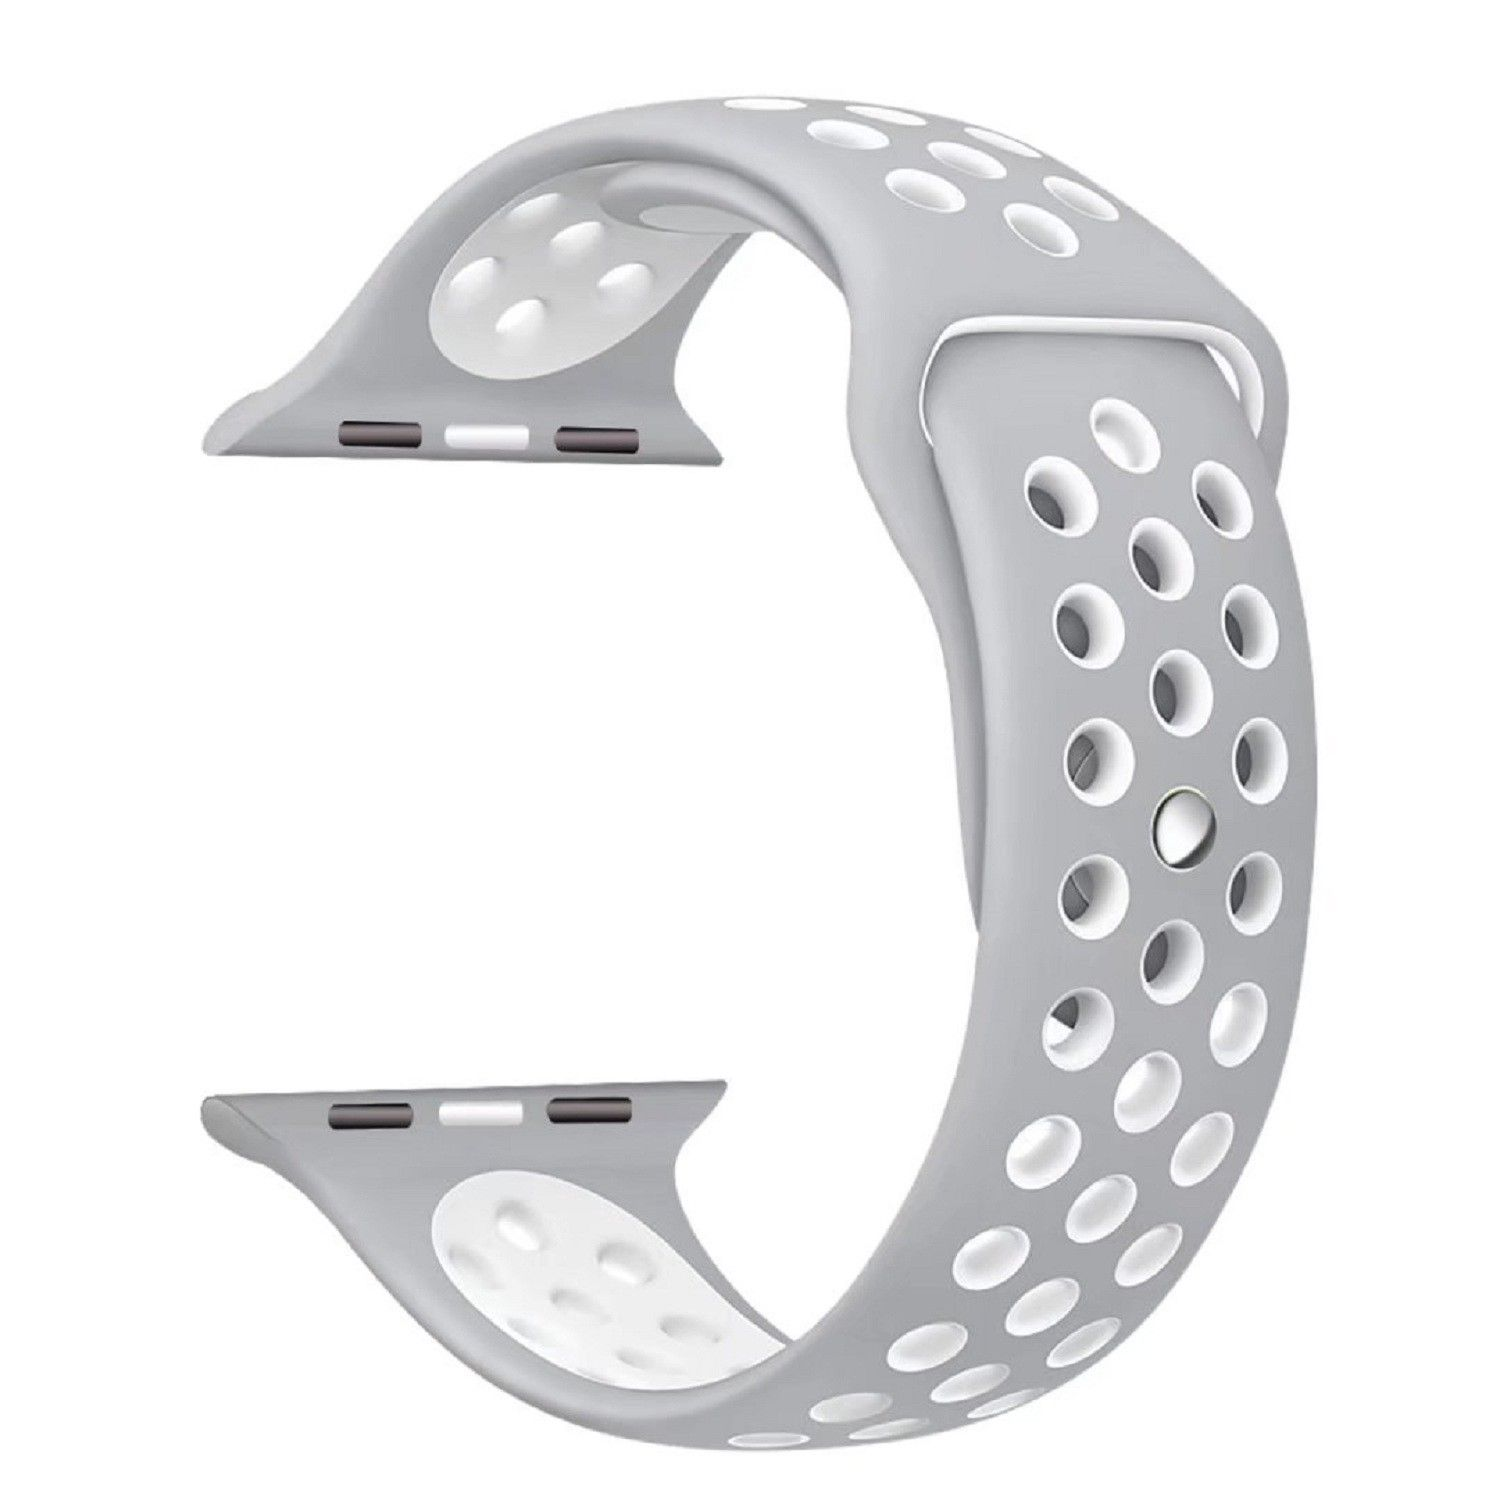 NEW Sport Nike+ Apple Watch Band Replacement Strap iWatch 38mm Silver/White Jewelry & Watches